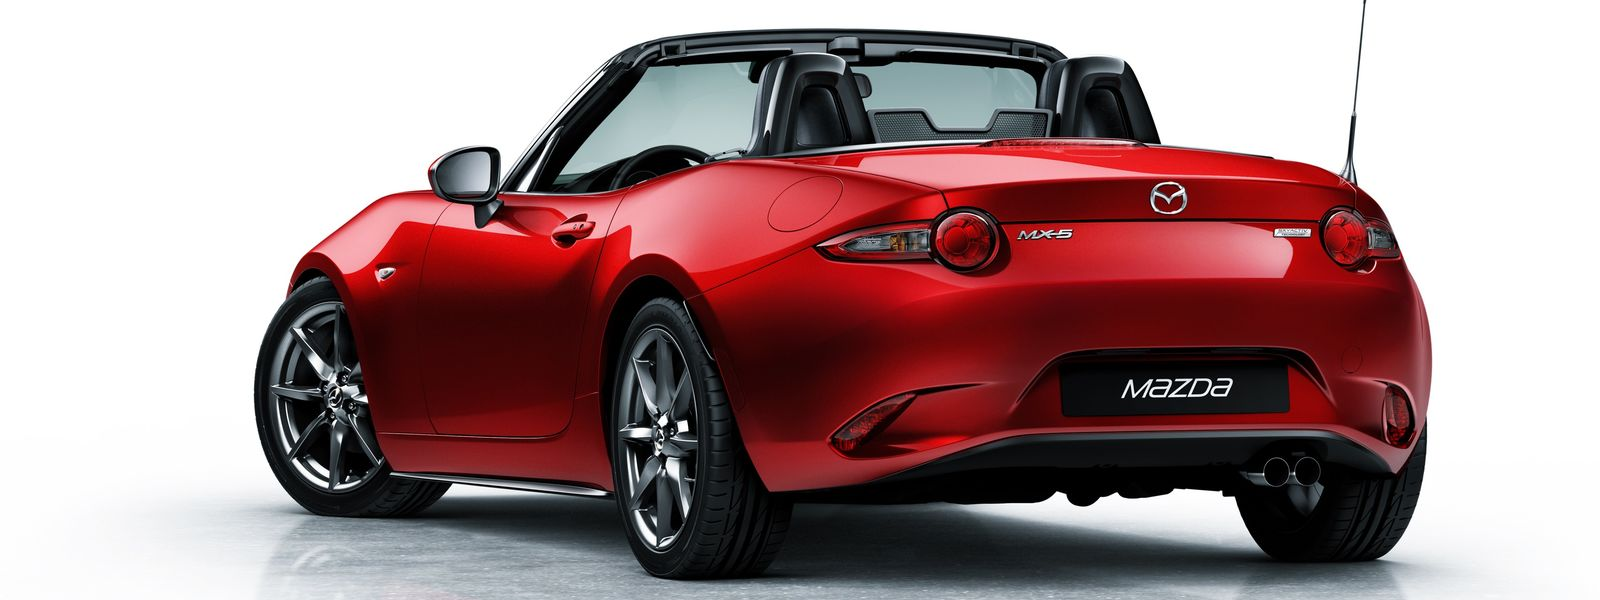 new mazda mx 5 prices revealed carwow. Black Bedroom Furniture Sets. Home Design Ideas